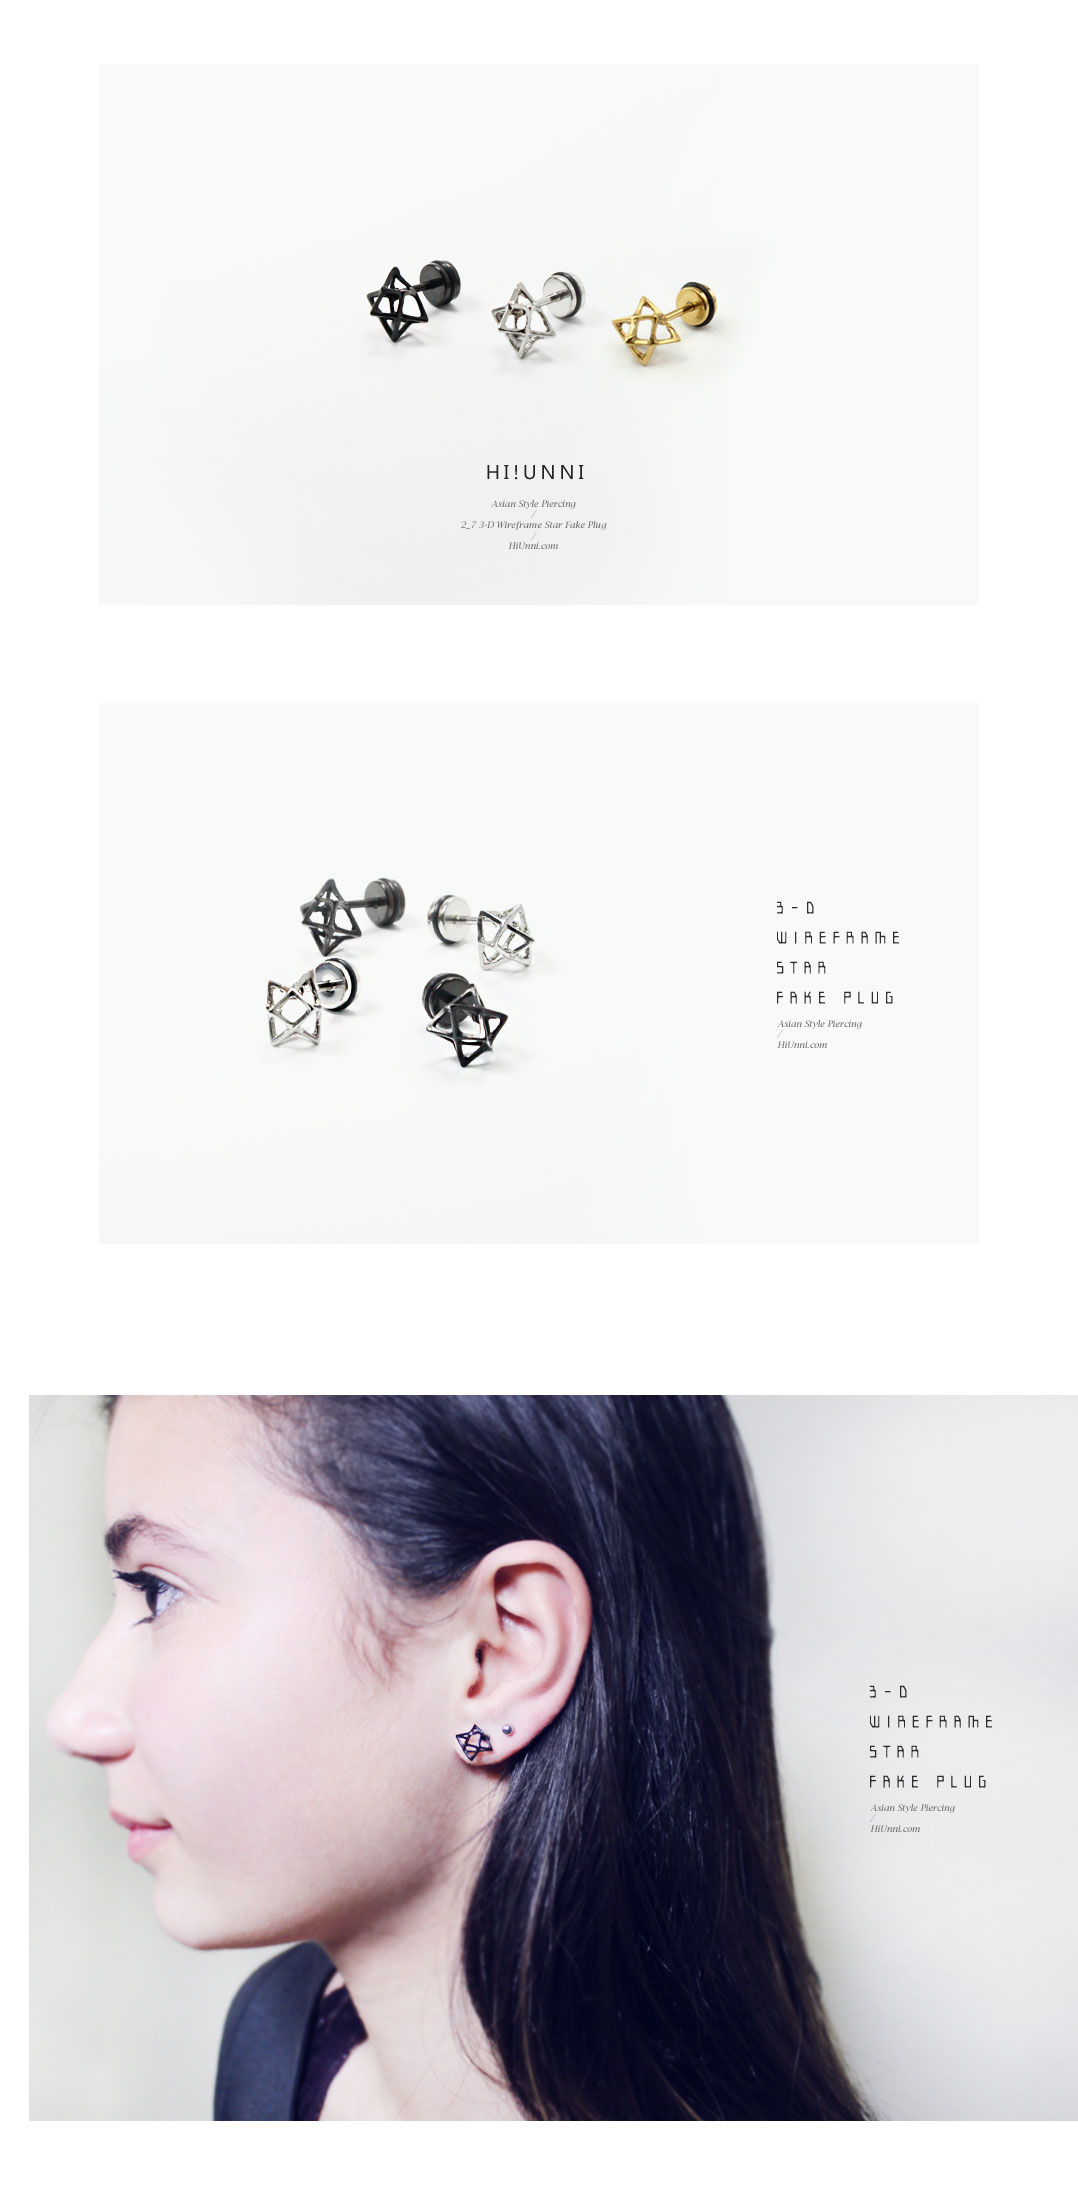 ear_studs_piercing_Cartilage_earrings_16g_316l_korean_asian_style_barbell_cheaters_fake_plug_3d_Wireframe_Star